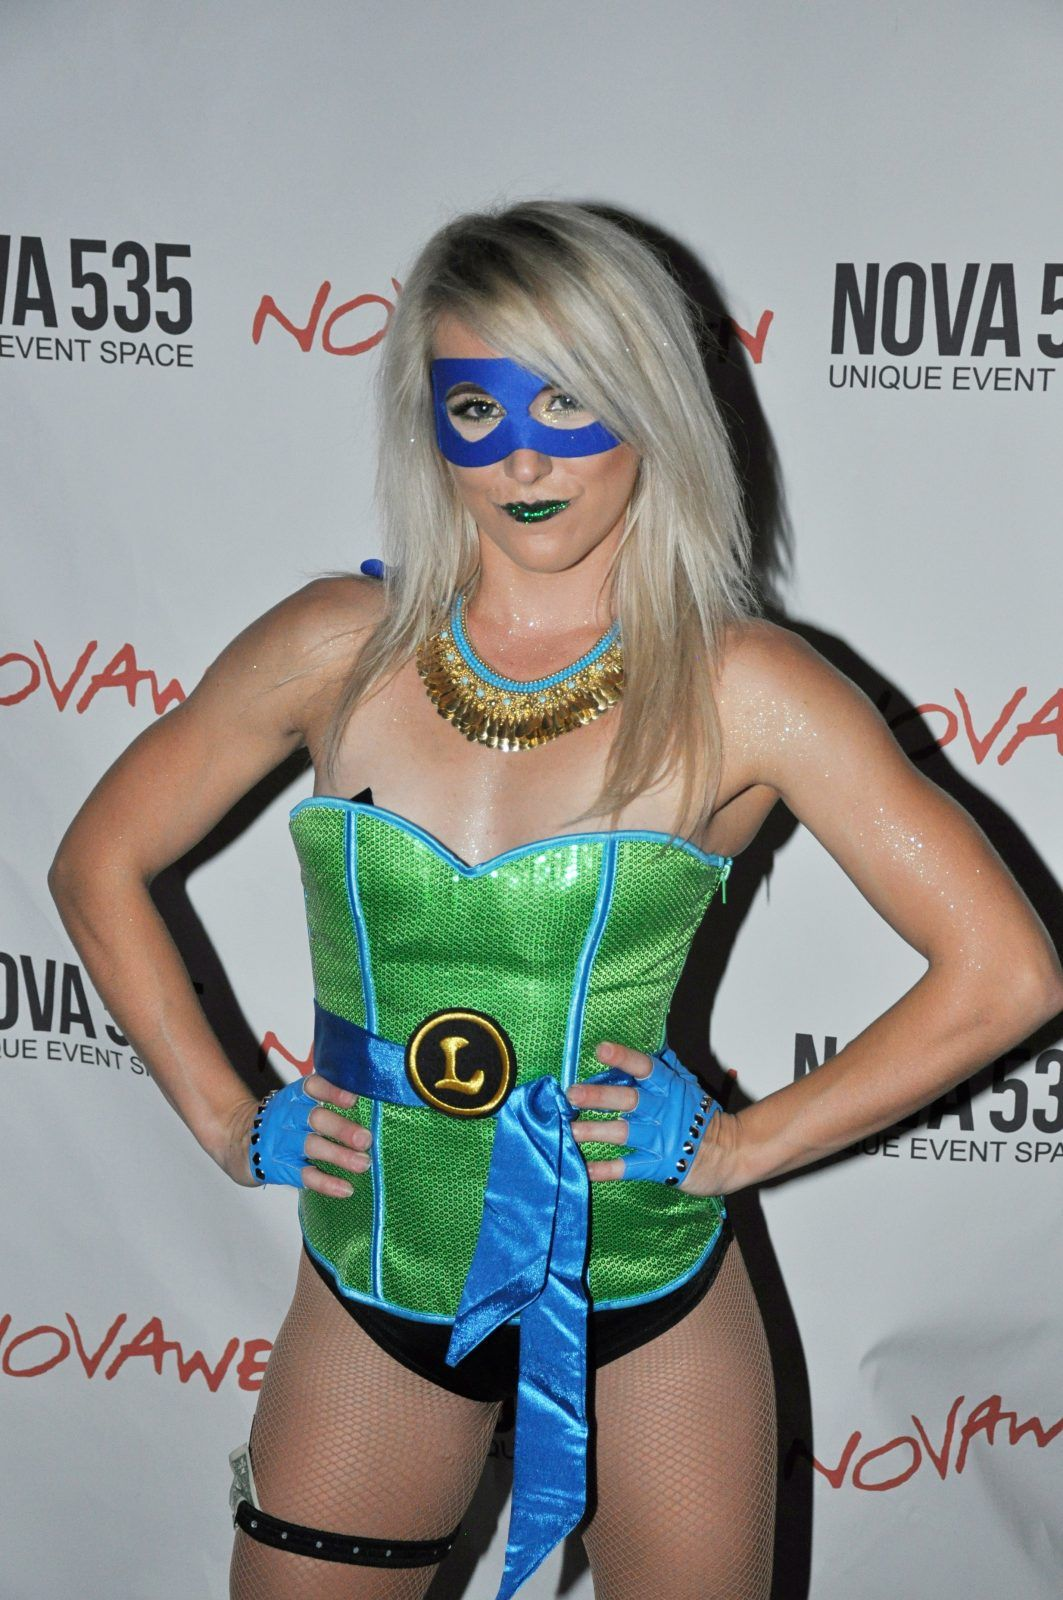 Team Novaween He11even at historic DTSP venue NOVA 535 downtown St. Pete, Florida